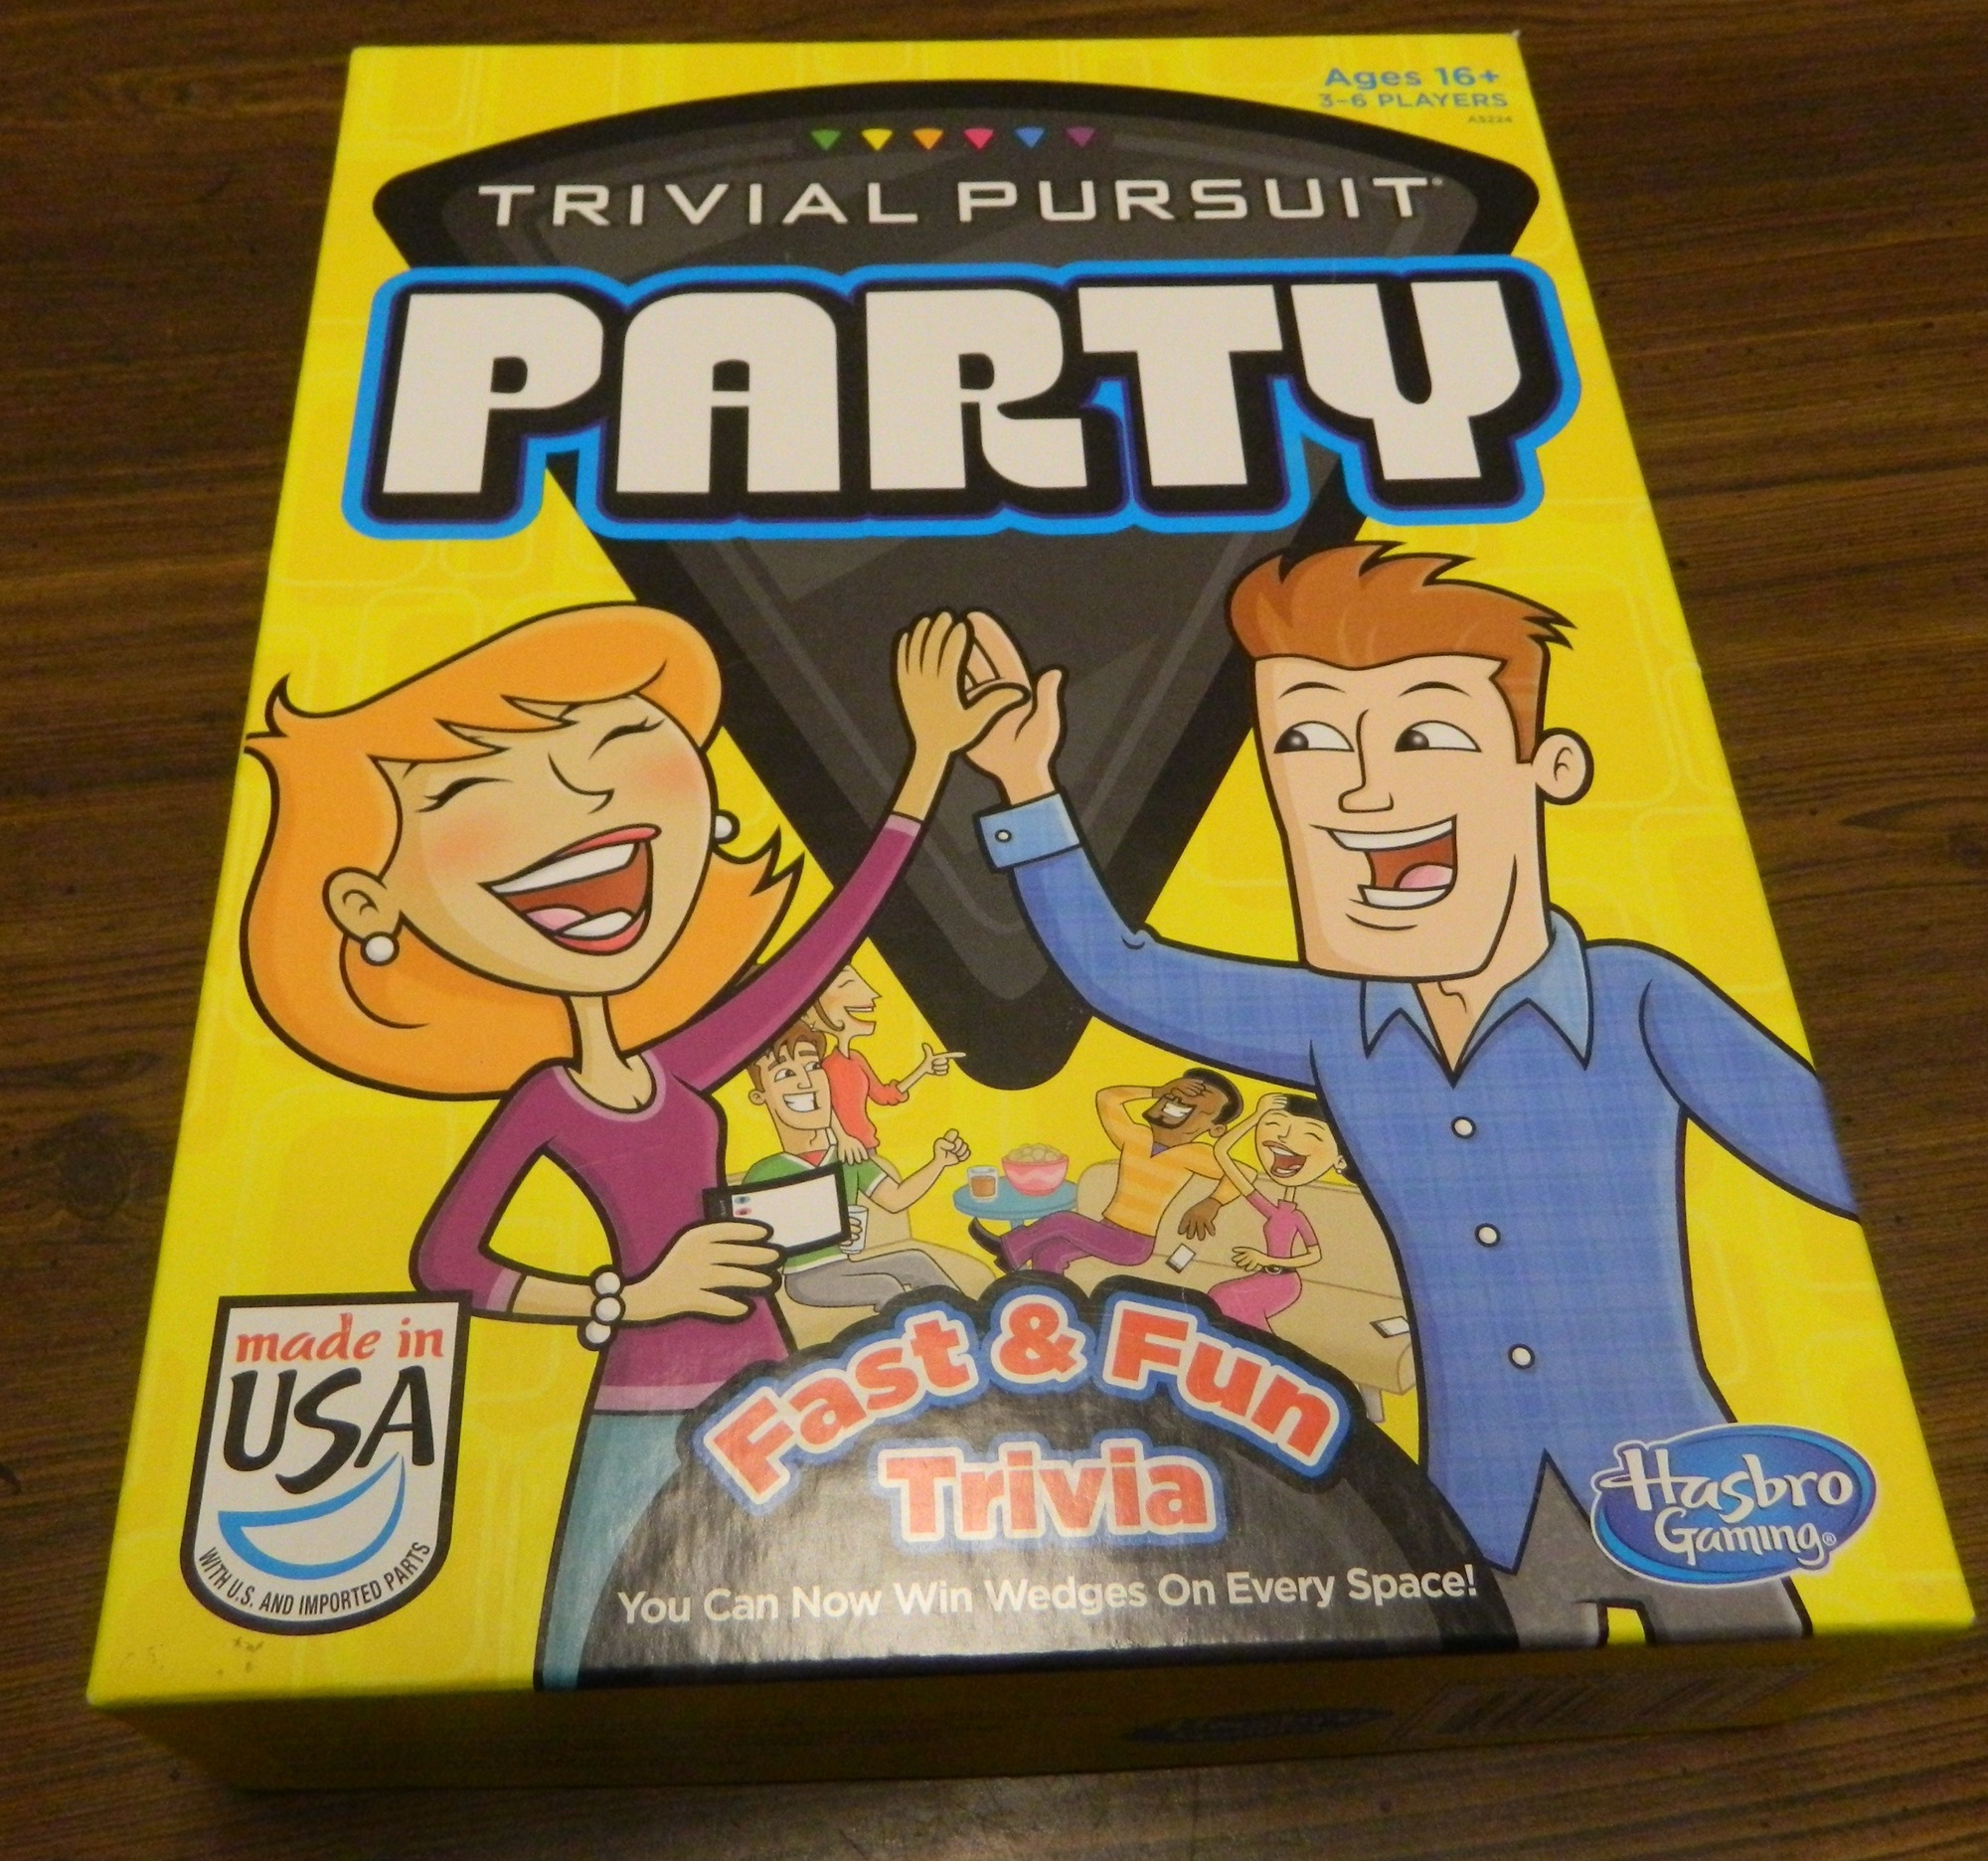 Trivial Pursuit Party Box